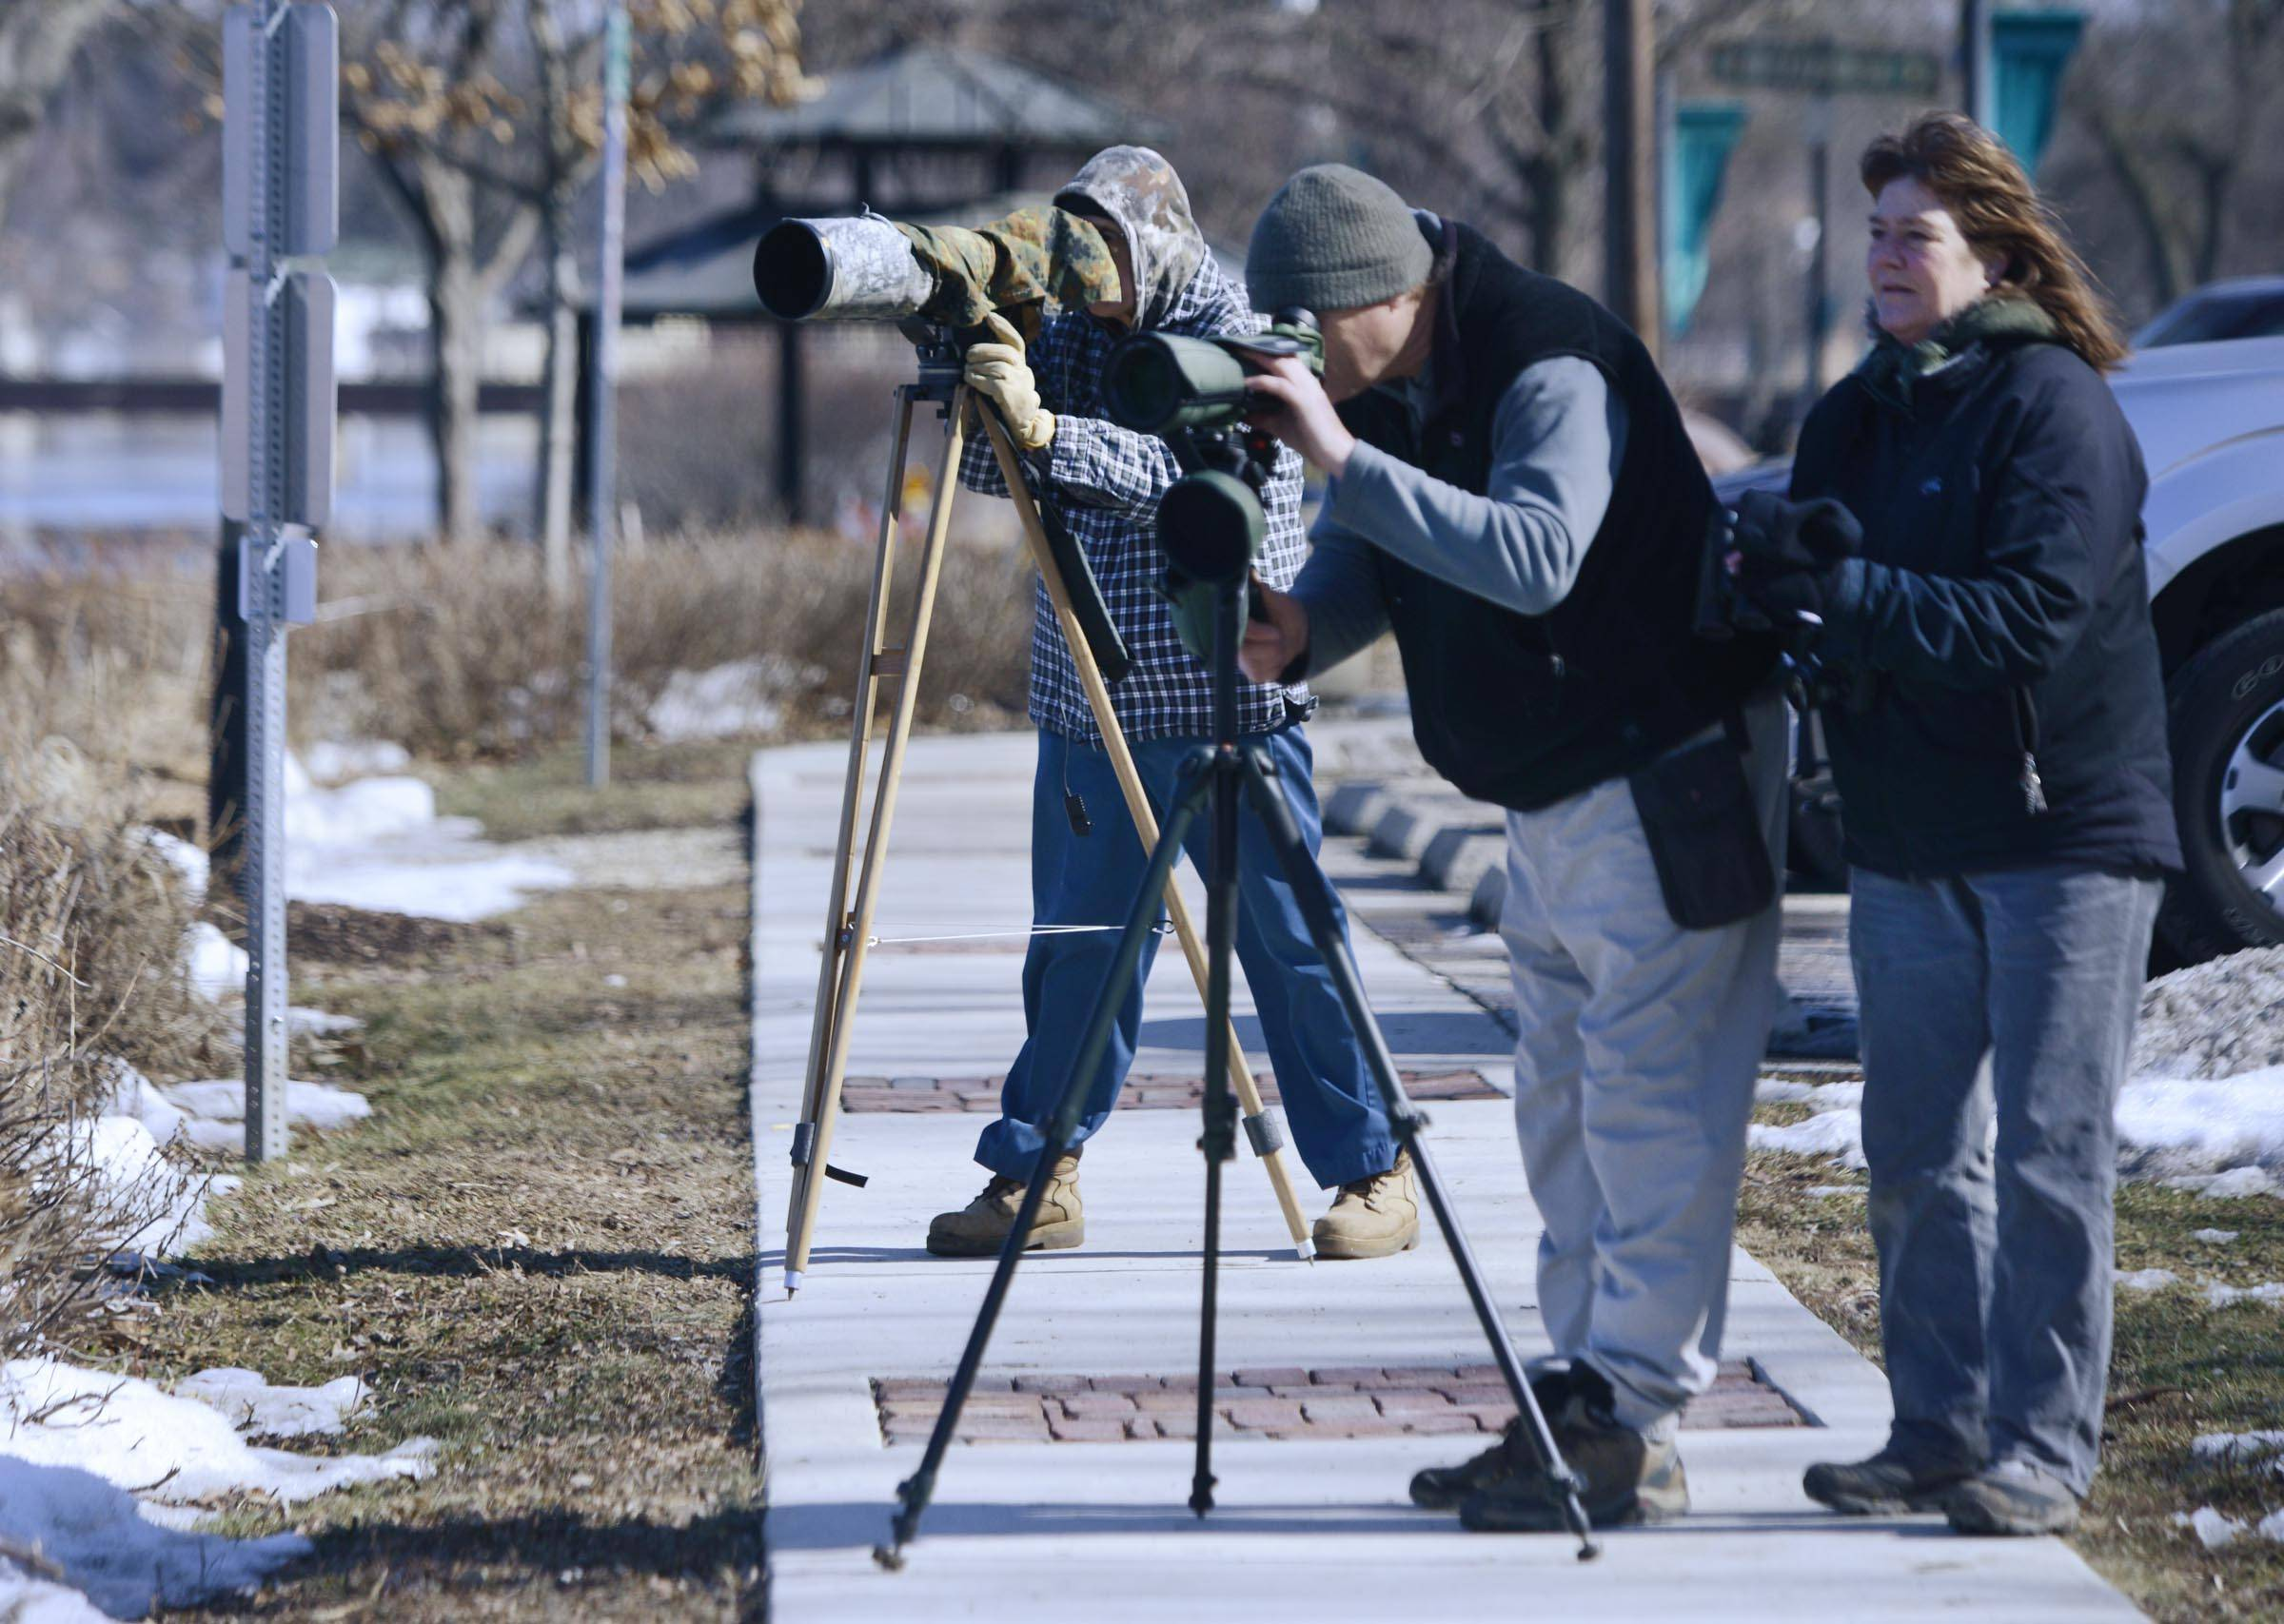 Charles Specht, of Mundelein, Sheilah Watson, of Lake Zurich, and Randall Wade, of Chicago, background, drove to West Dundee to photograph a Barrow's goldeneye duck Thursday. The blue-headed bird is native to the northwest and is rarely seen in this area. When word got out through social media, bird-watchers appeared to catch a glimpse.